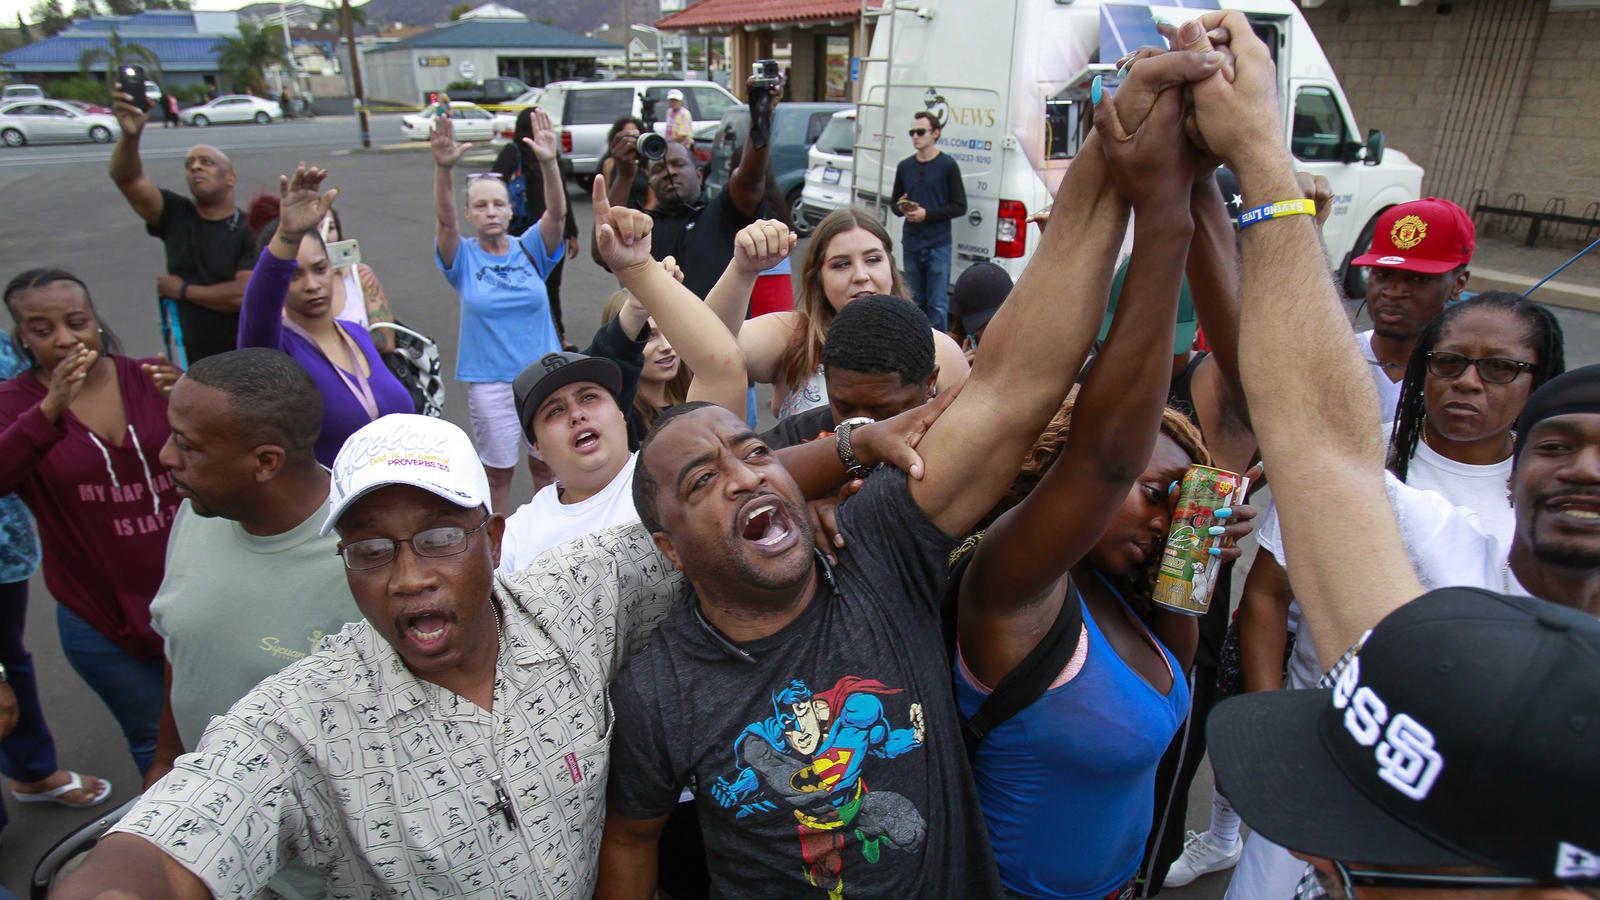 (Hayne Palmour IV / San Diego Union-Tribune. Pastor Russell Bowman, center, leads the crowd in a prayer at the scene where a black man was shot by El Cajon police earlier.